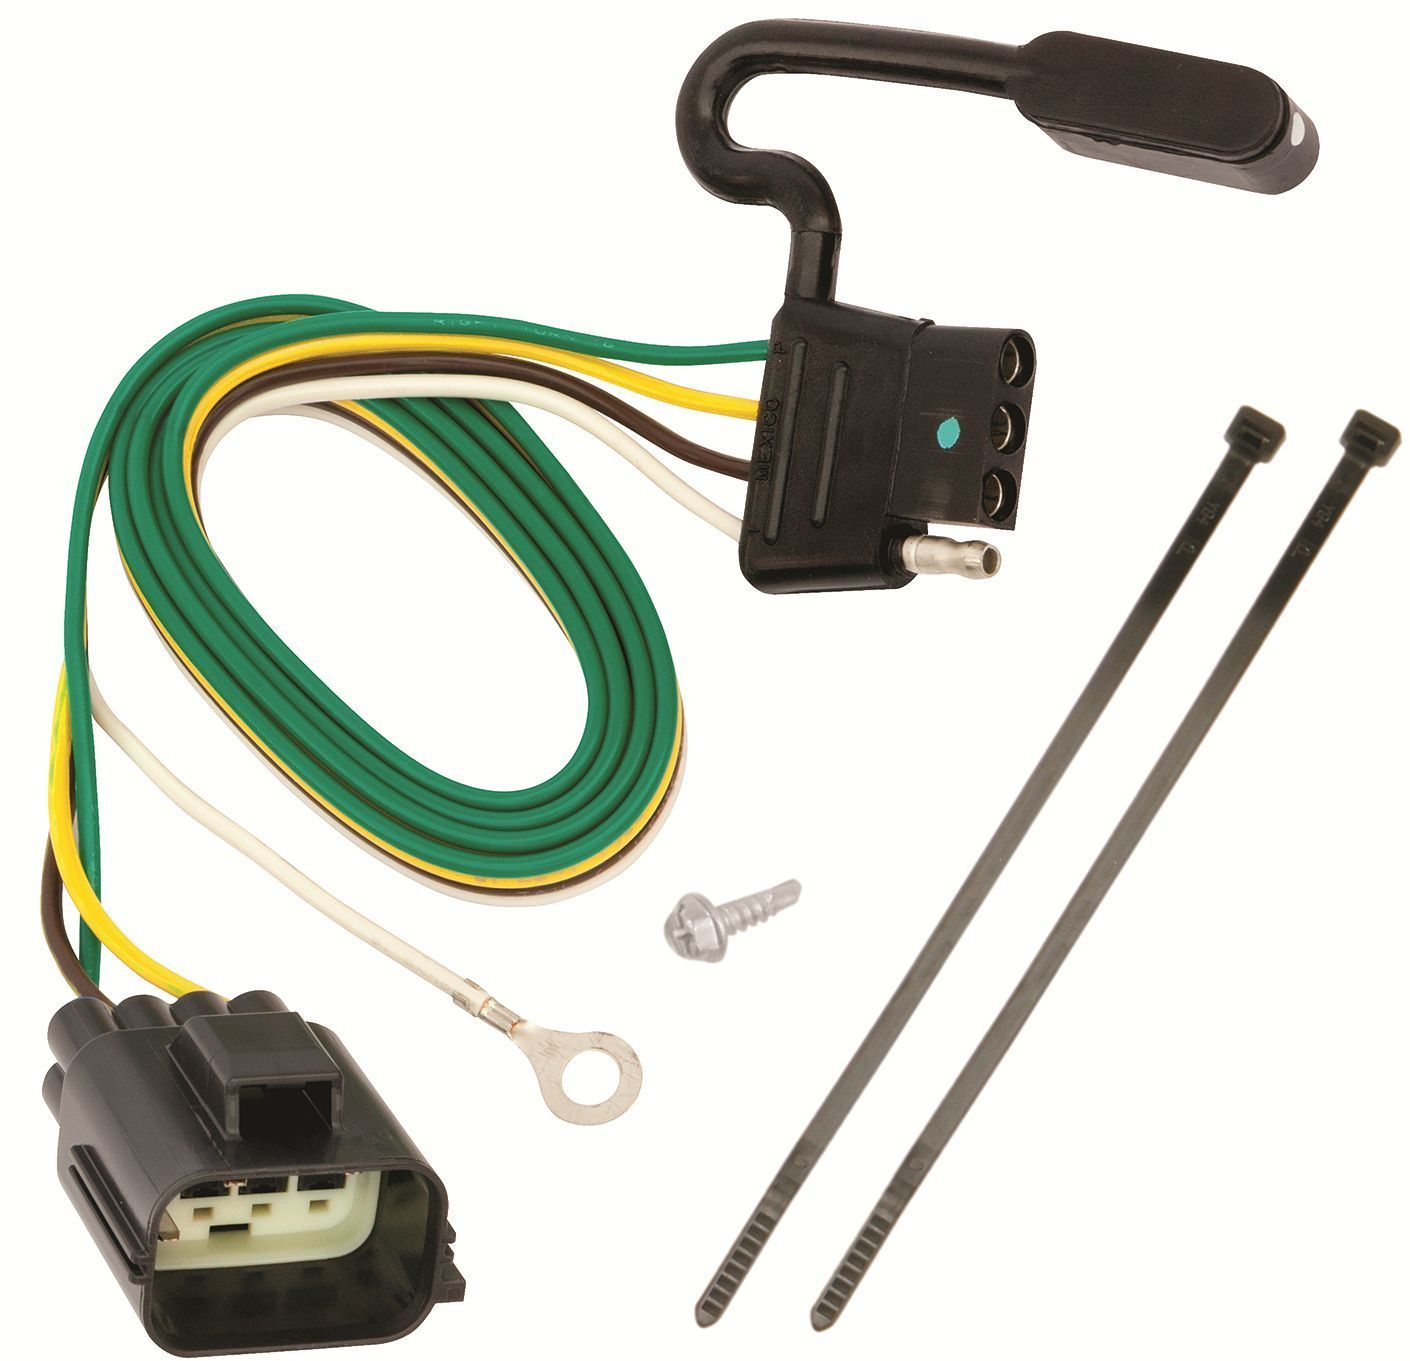 2012-14 LAND ROVER RANGE ROVER EVOQUE TRAILER HITCH WIRING KIT HARNESS PLUG  PLAY - $24.70